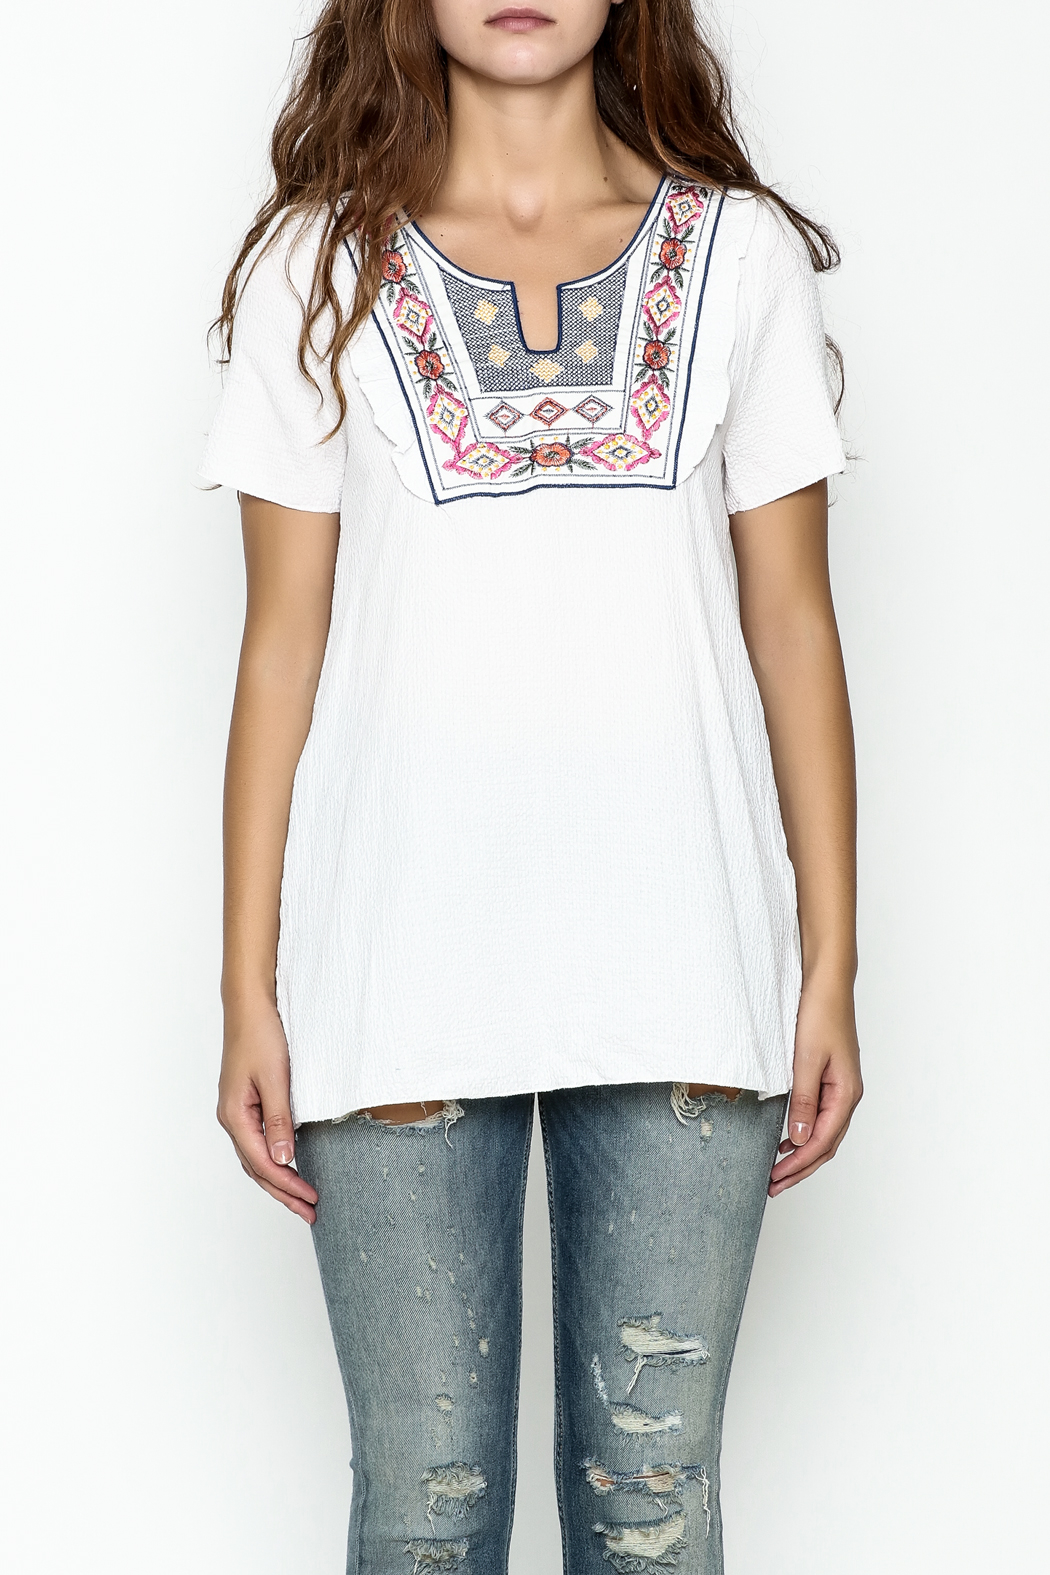 Hailey & Co. Boho Embroidered Top - Front Full Image